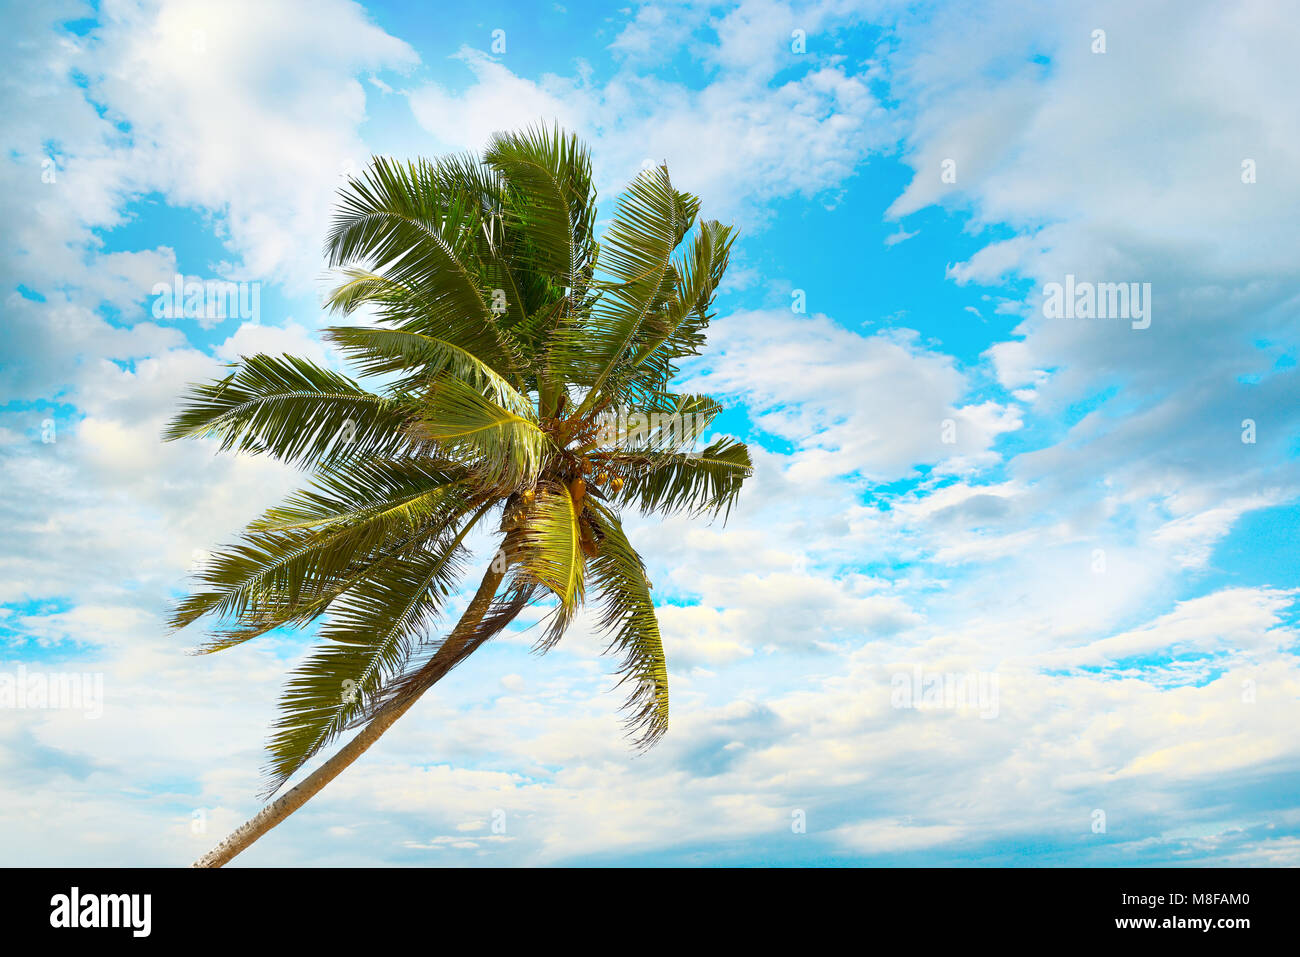 Tilted coconut palm on background the blue sky with white clouds. - Stock Image